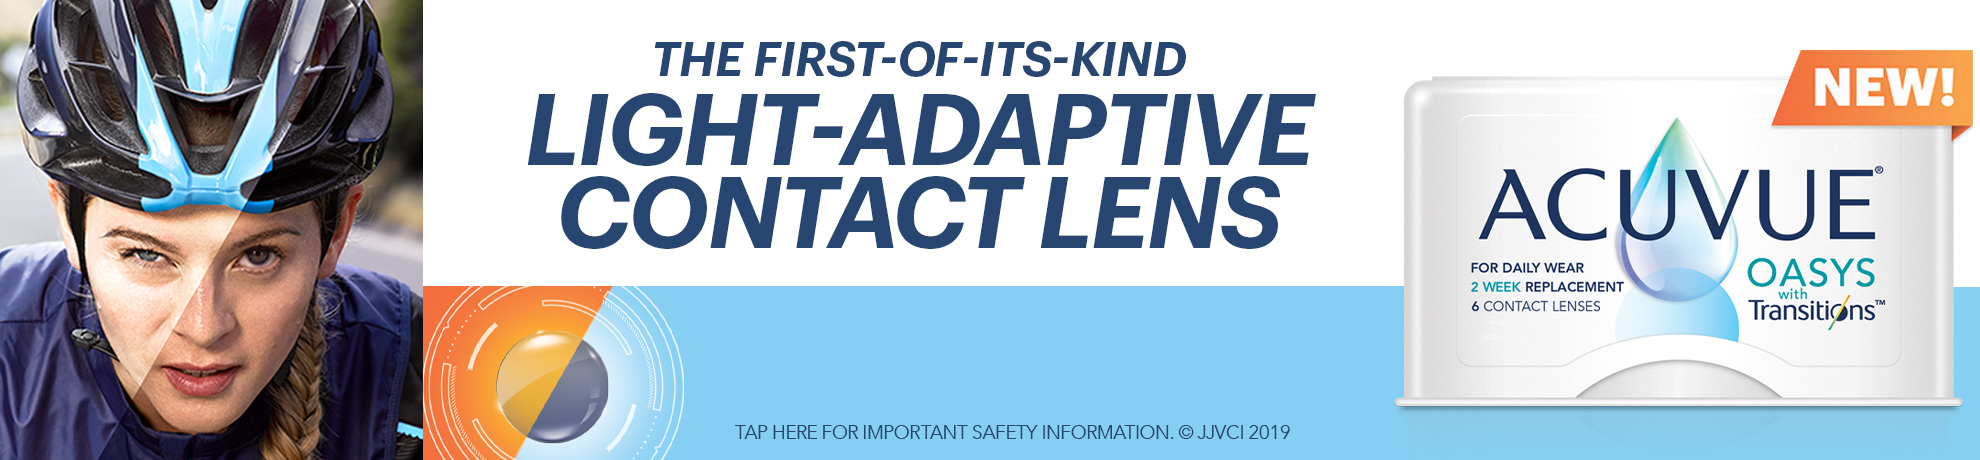 Ad for acuvue light adaptive contact lenses